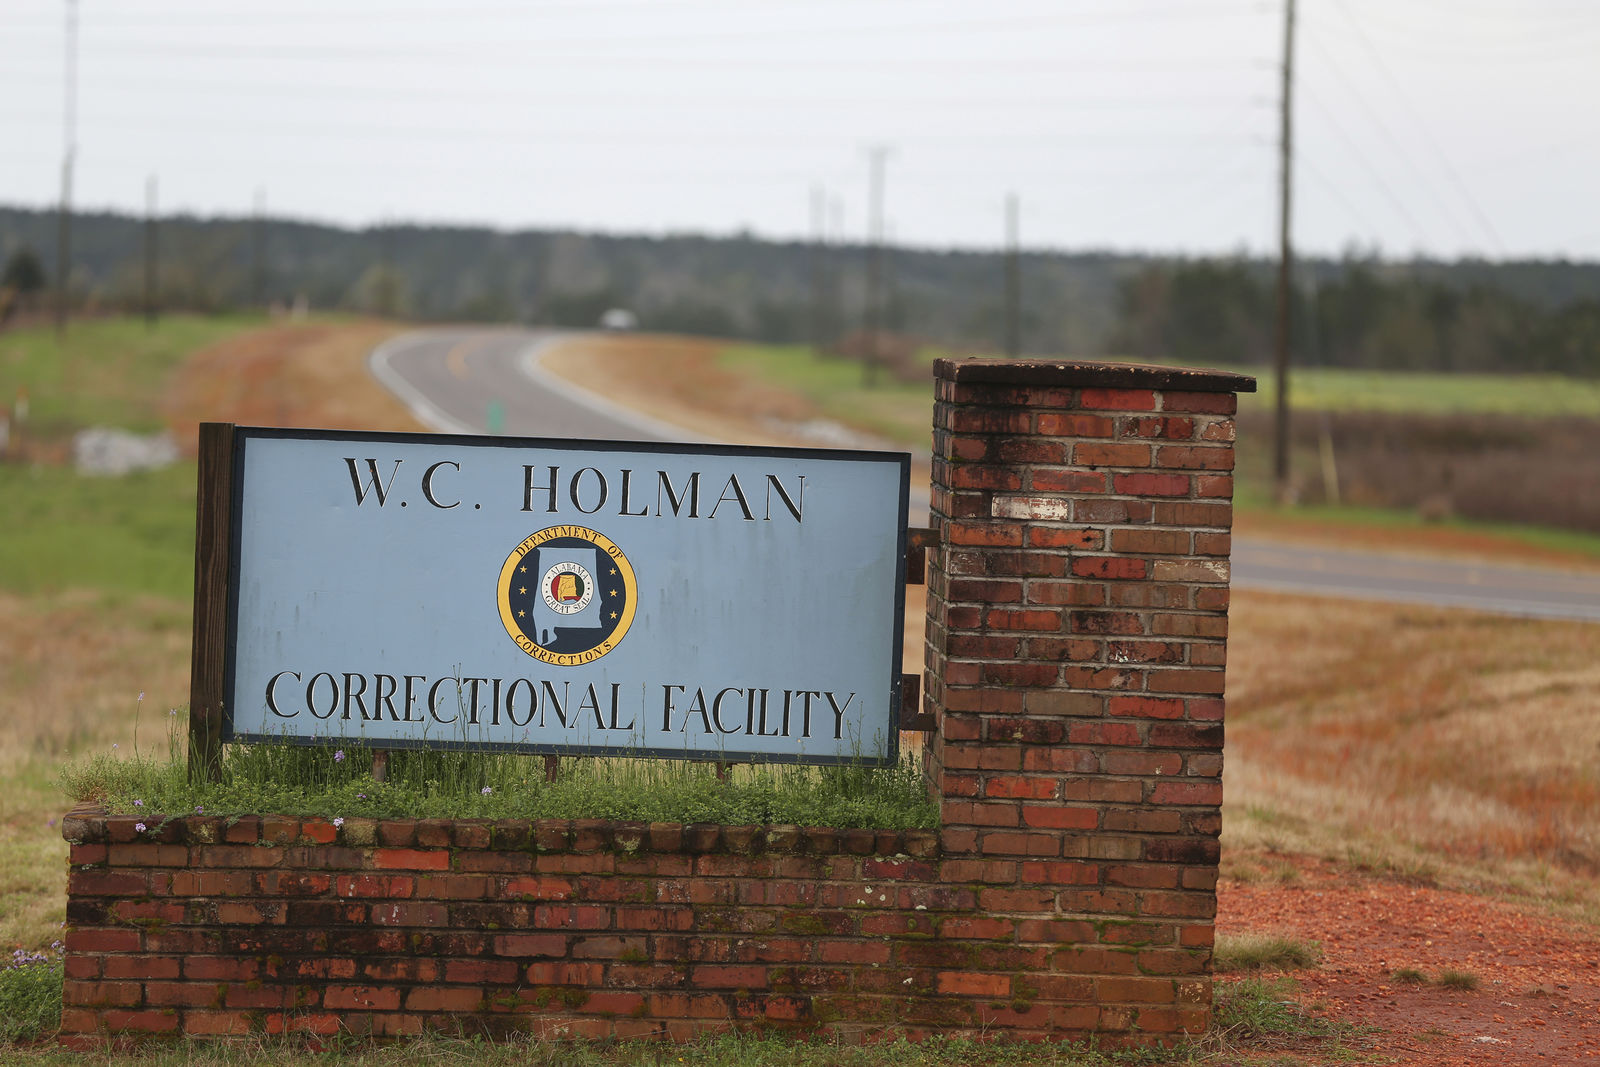 FILE -In this March 12, 2016 file photo, the sign to The William C. Holman Correctional Facility in Atmore, Ala., is displayed. (Sharon Steinmann/AL.com via AP, File)